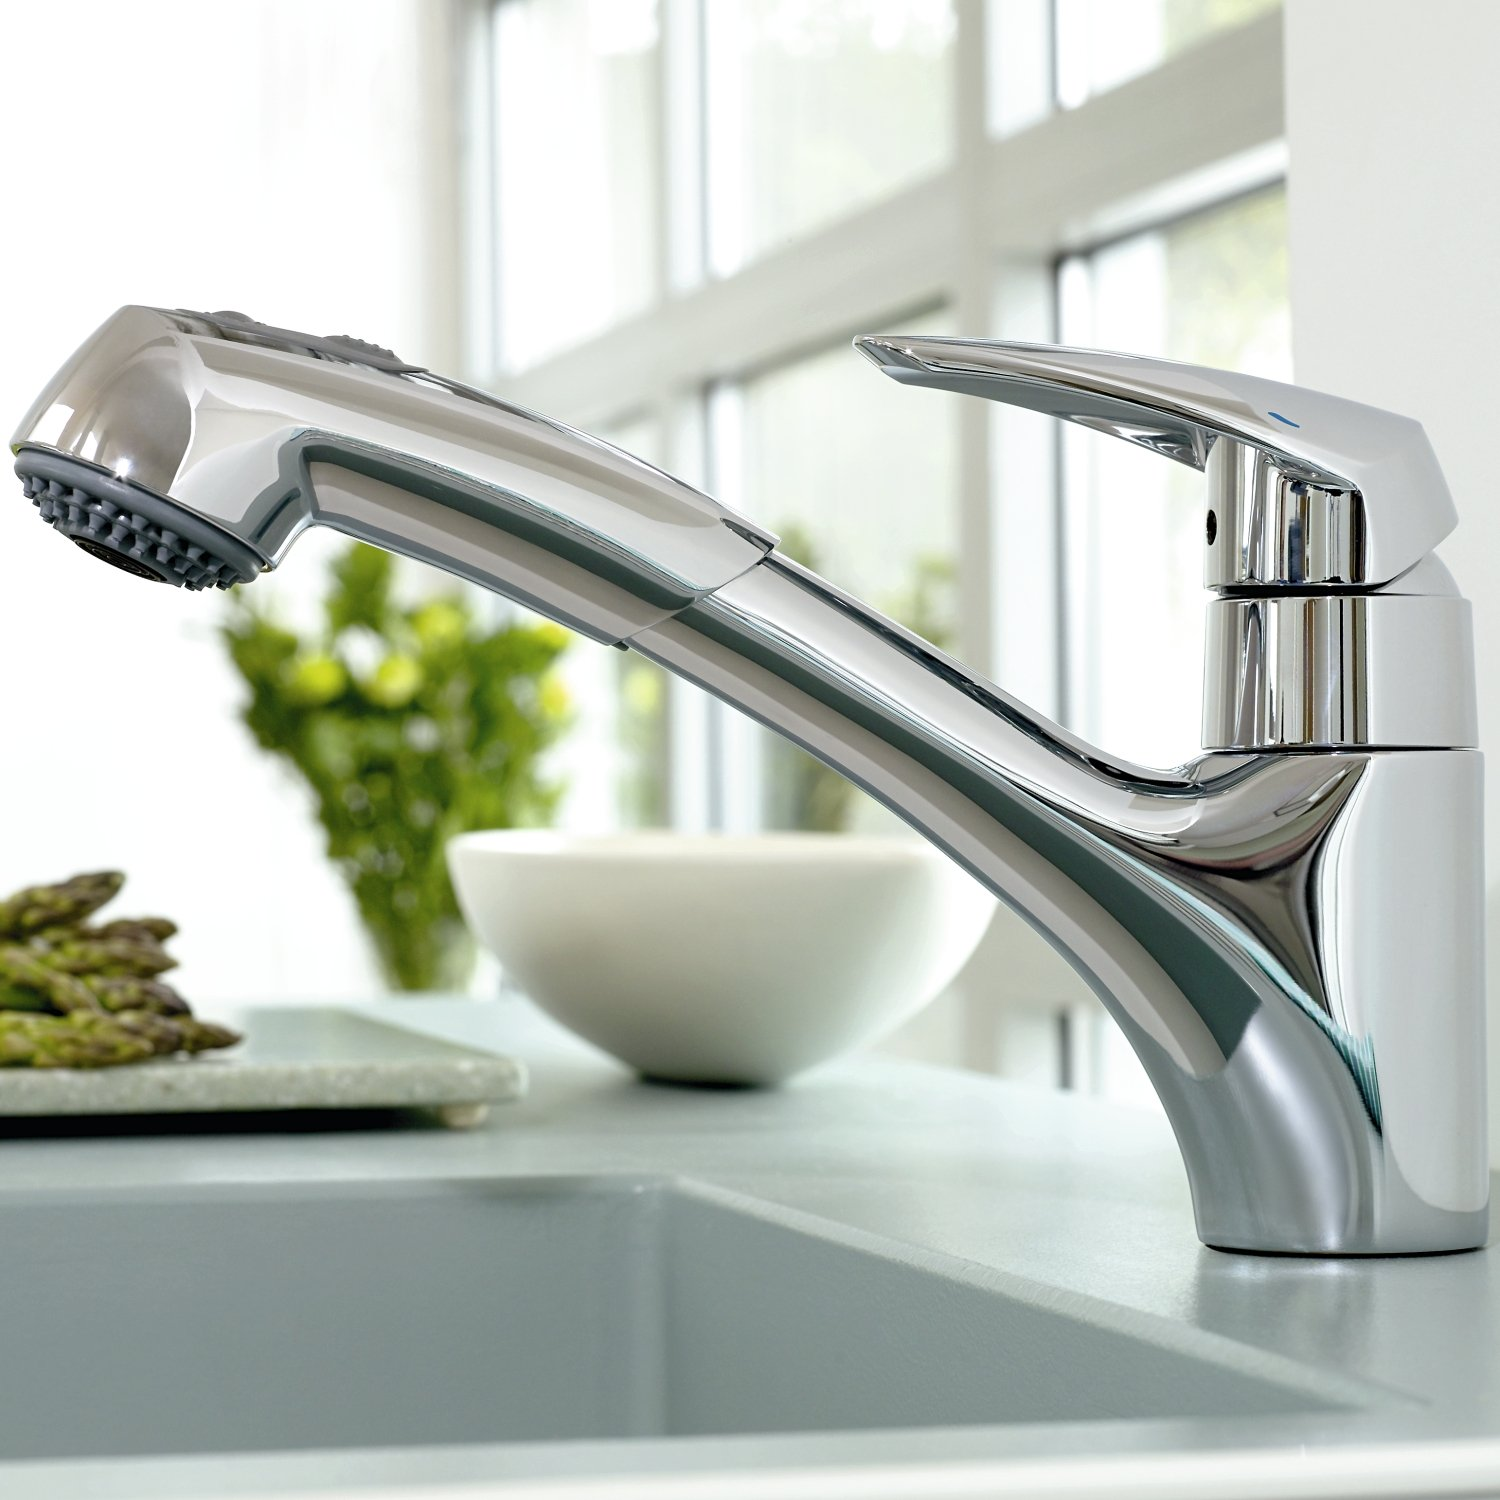 Eurodisc Single Handle Pull Out Kitchen Faucet   Touch On Kitchen Sink  Faucets   Amazon.com